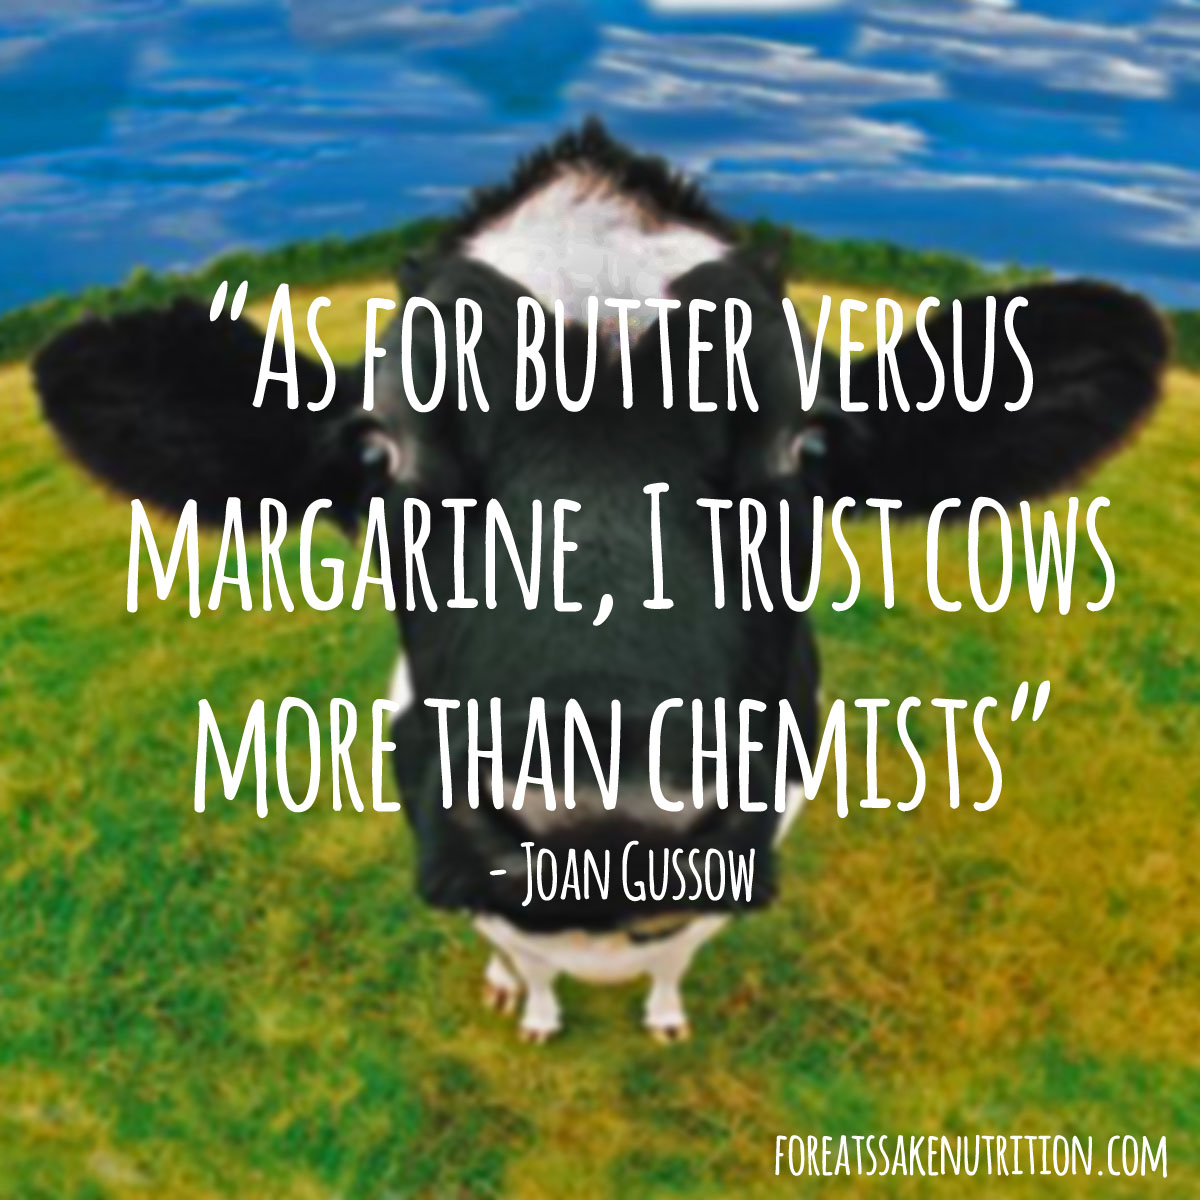 As for butter versus margarine, I trust cows more than chemists.